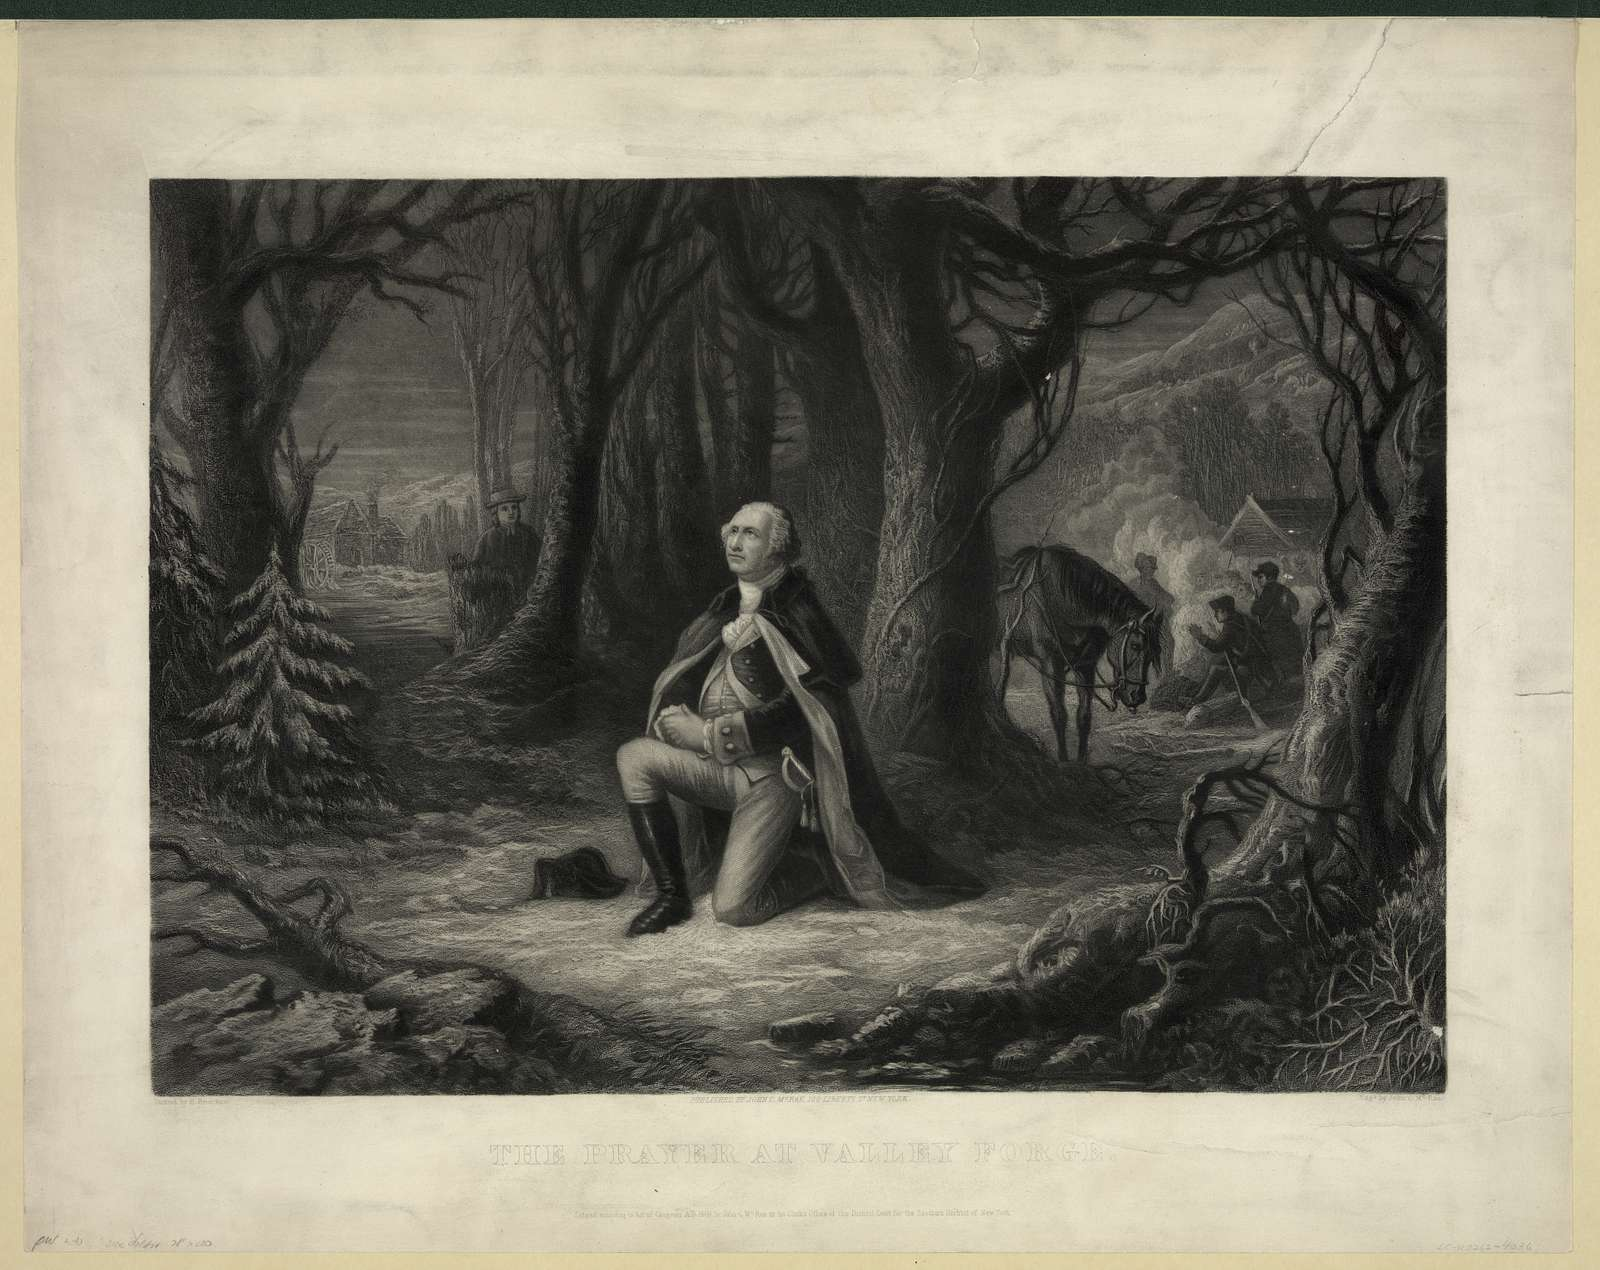 The prayer at Valley Forge / painted by H. Brueckner ; engd. by John C. McRae.